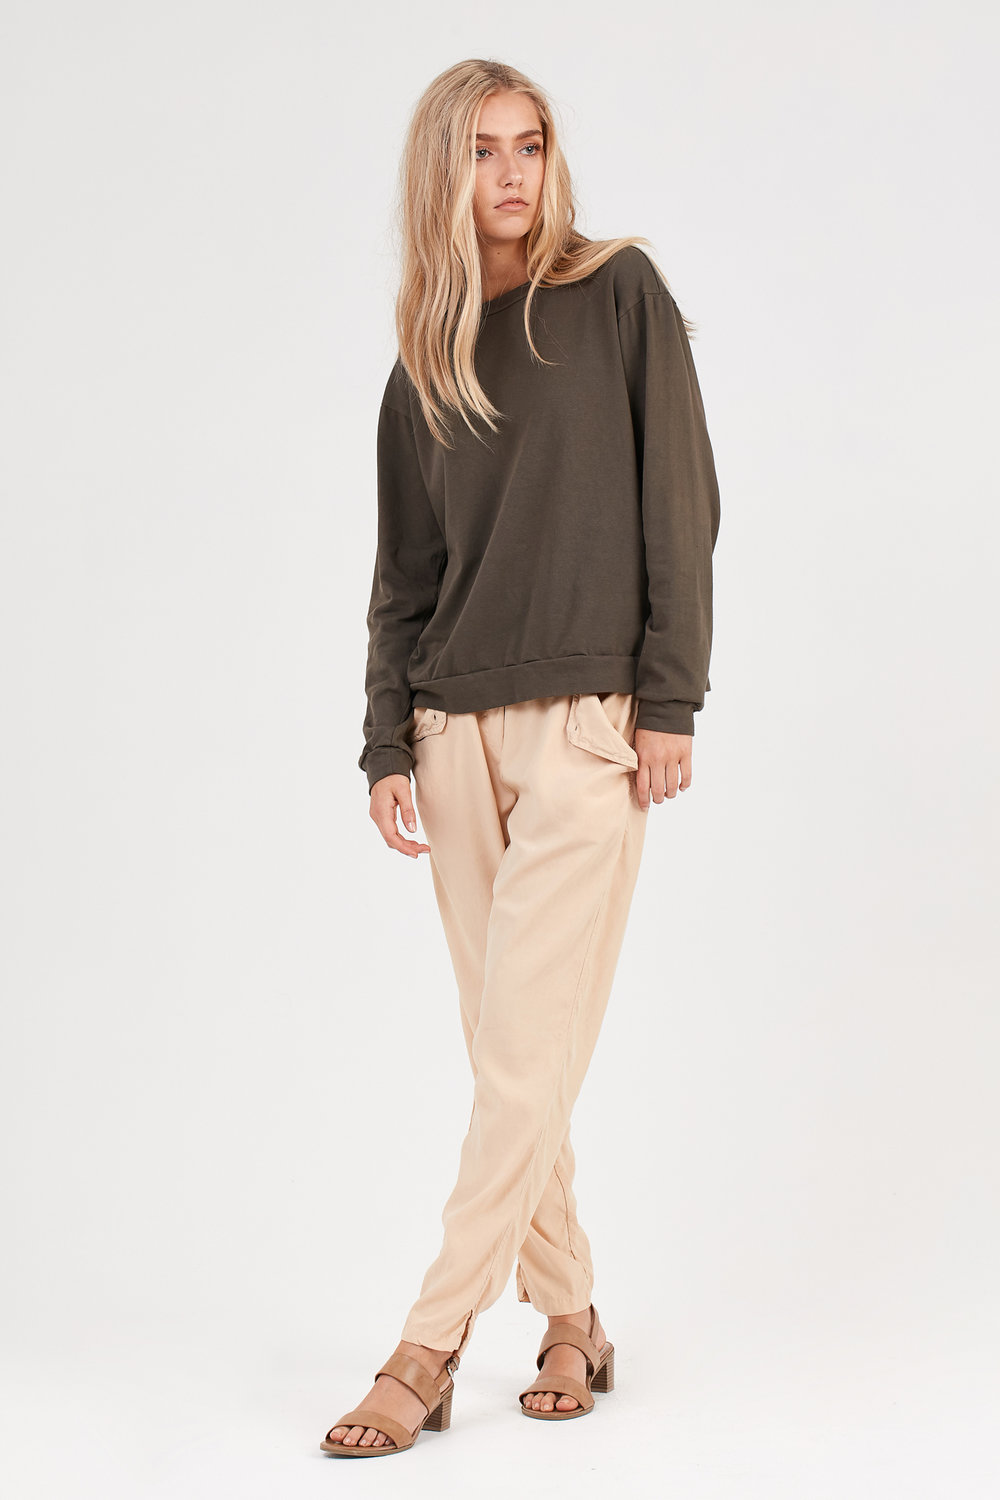 COCO JUMPER OLIVE. KUL PANT FAWN